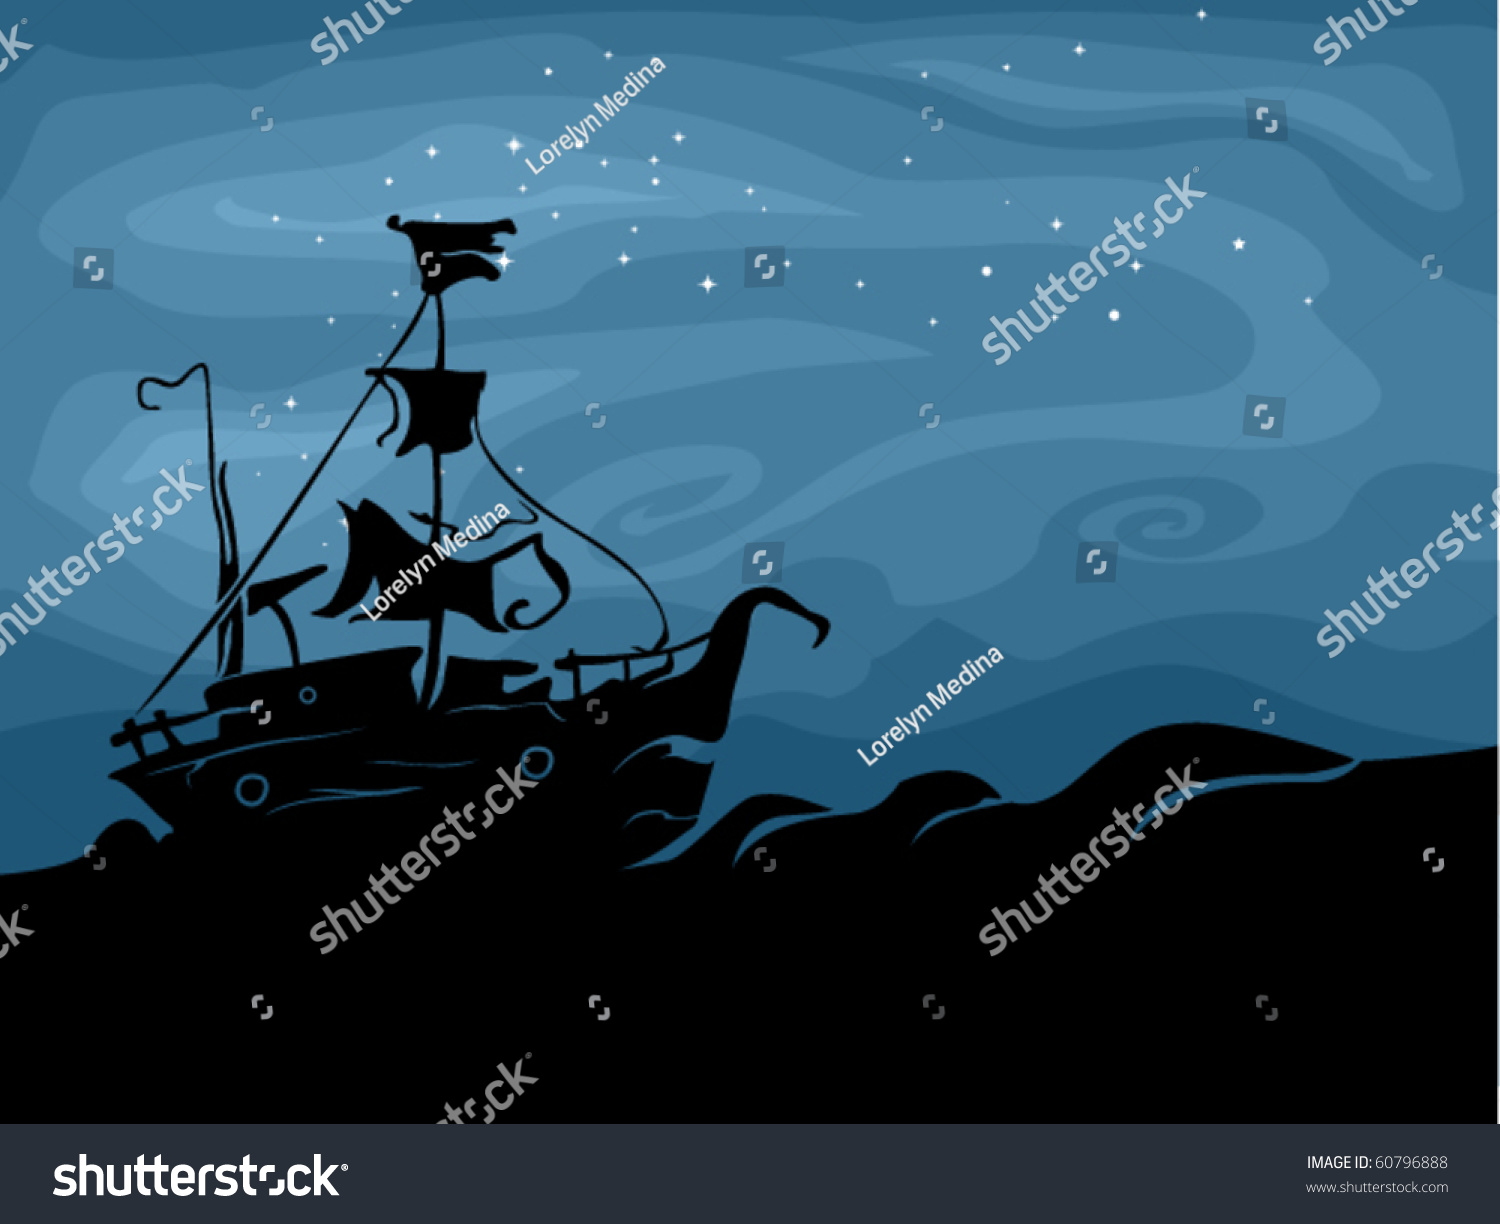 halloween themed design featuring ghost ship sailing stock vector